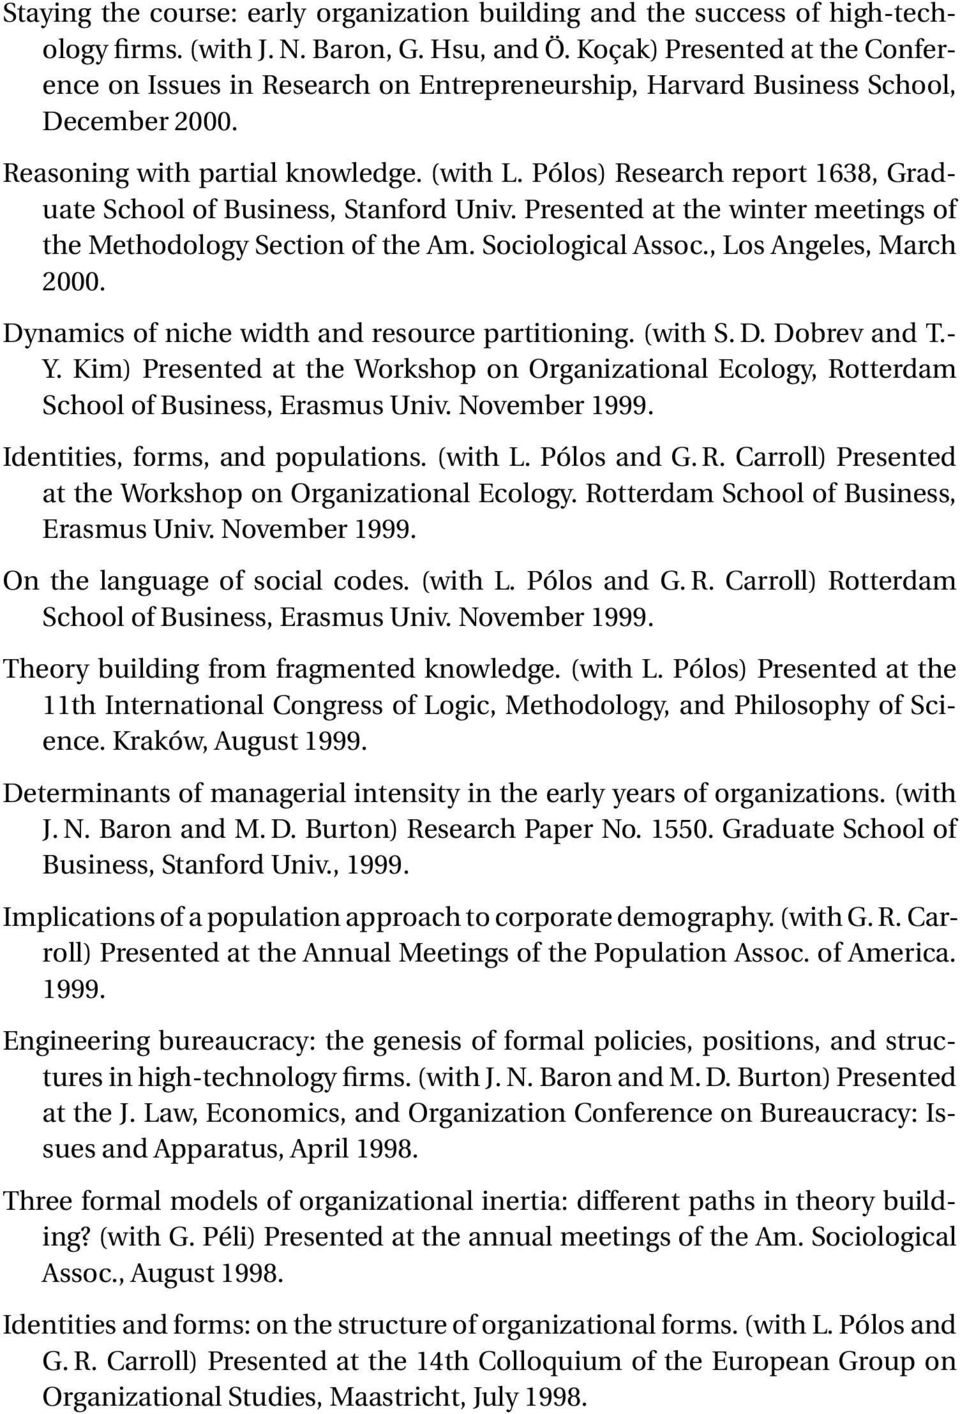 Pólos) Research report 1638, Graduate School of Business, Stanford Univ. Presented at the winter meetings of the Methodology Section of the Am. Sociological Assoc., Los Angeles, March 2000.